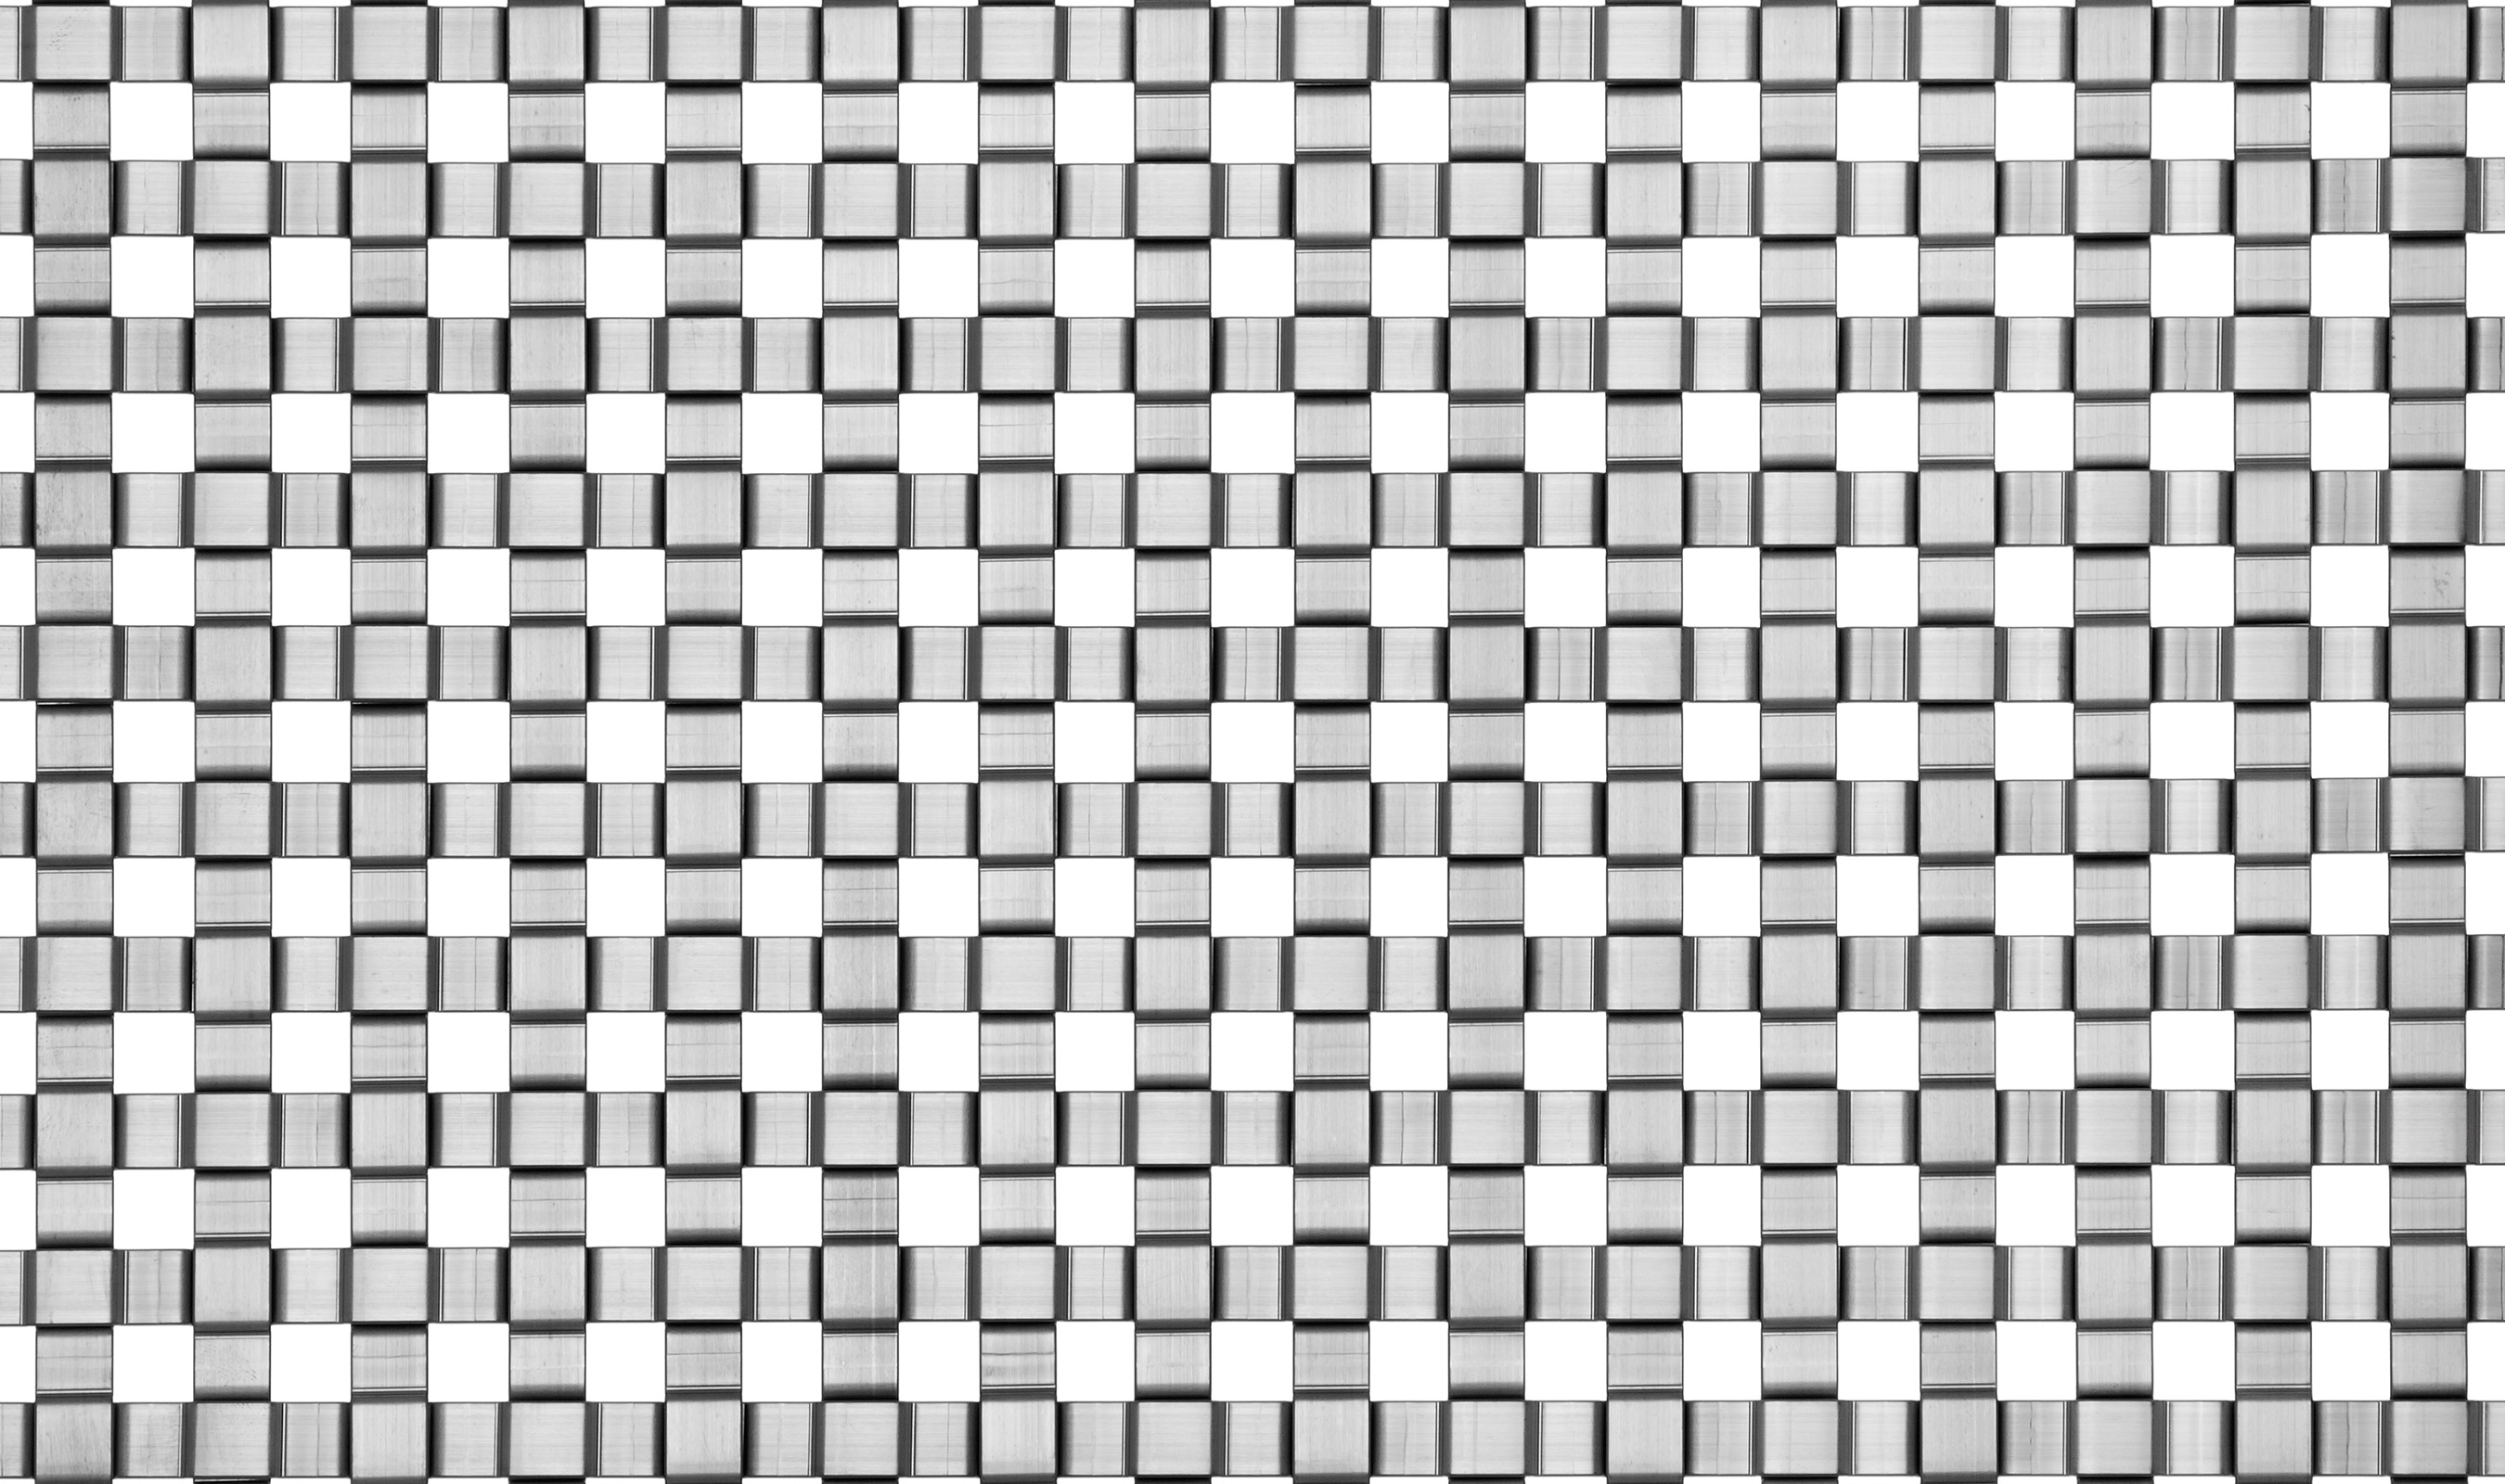 S-14 in Stainless Woven Wire Mesh